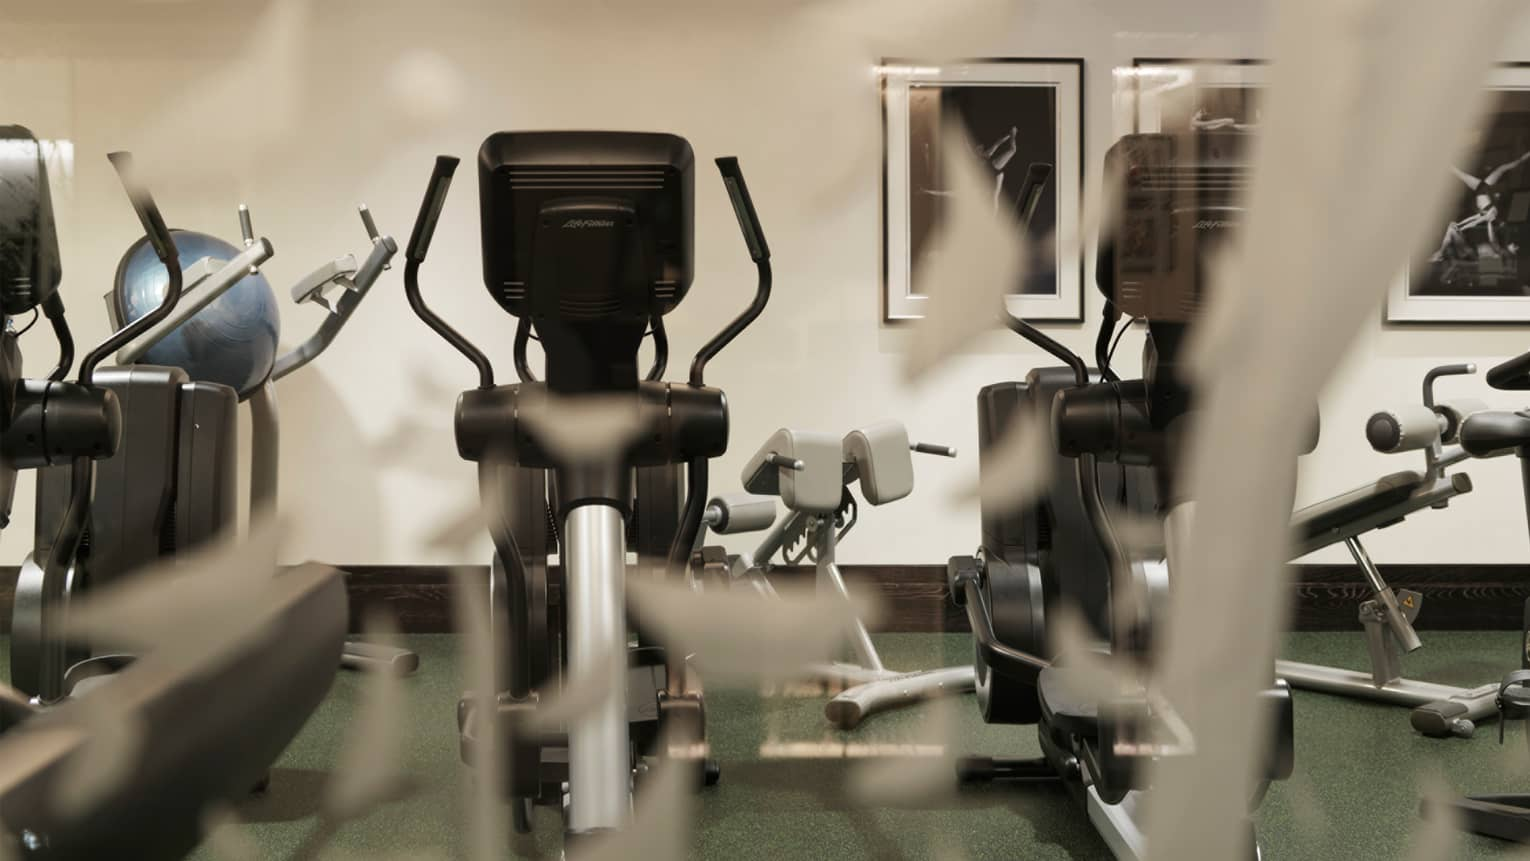 Cardio elliptical machines in workout room